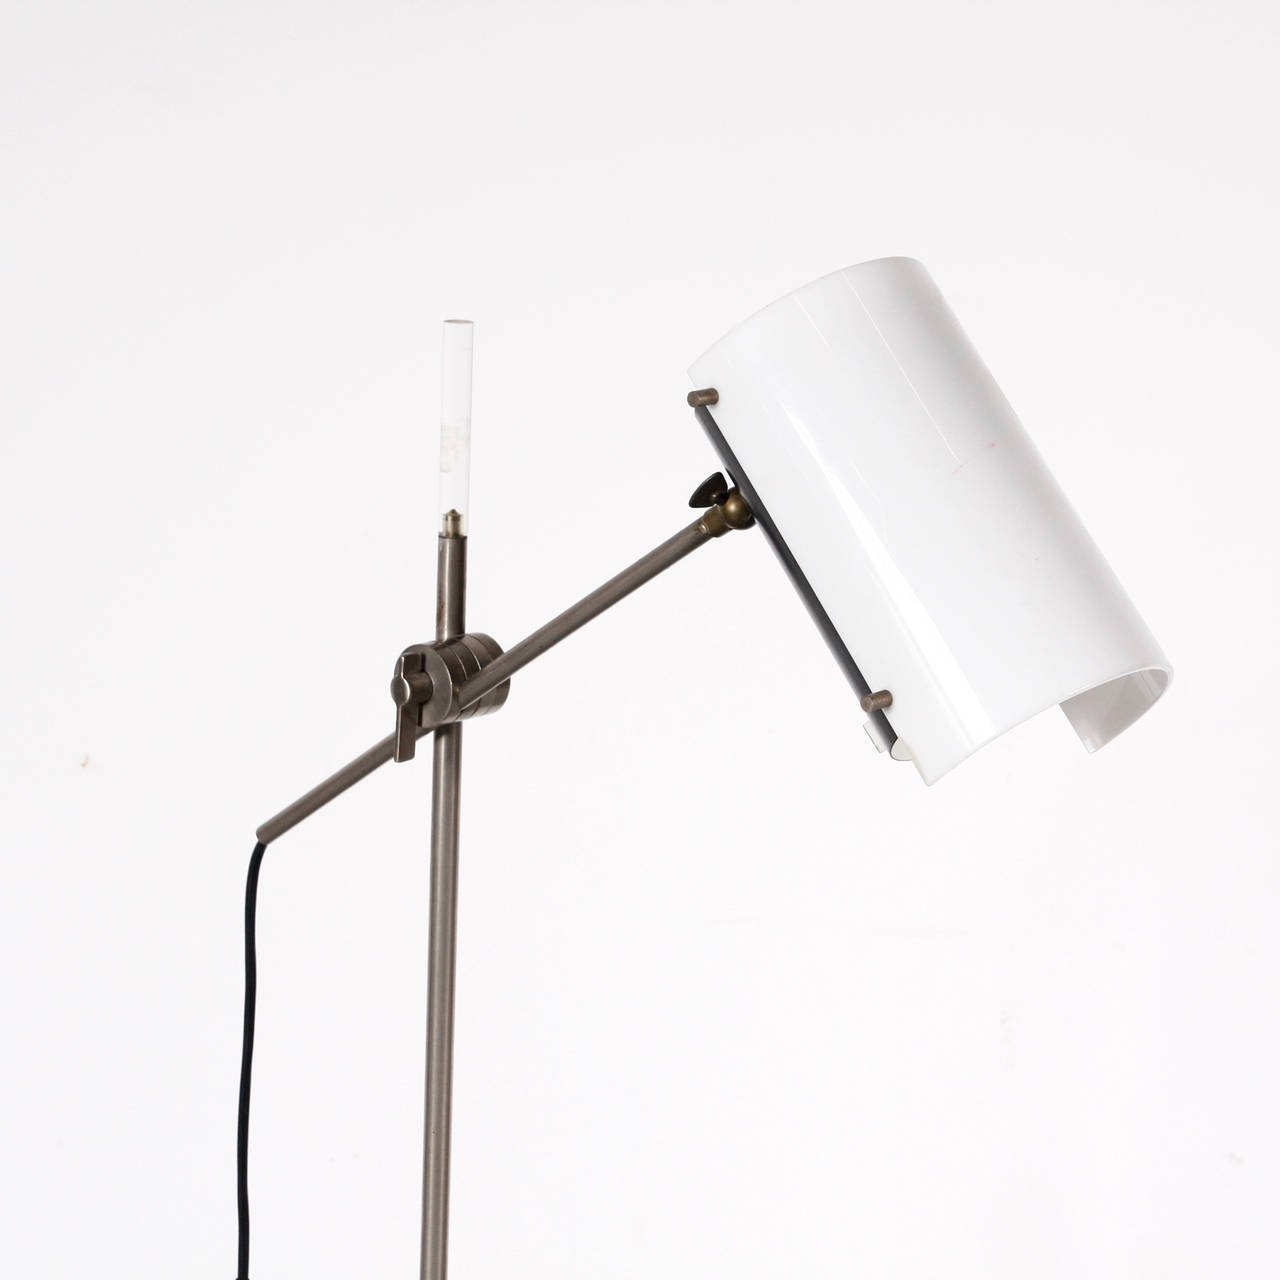 1950s philips floor lamp galerie gaudium add to cart sculptural floor lamp manufactured by philips aloadofball Image collections